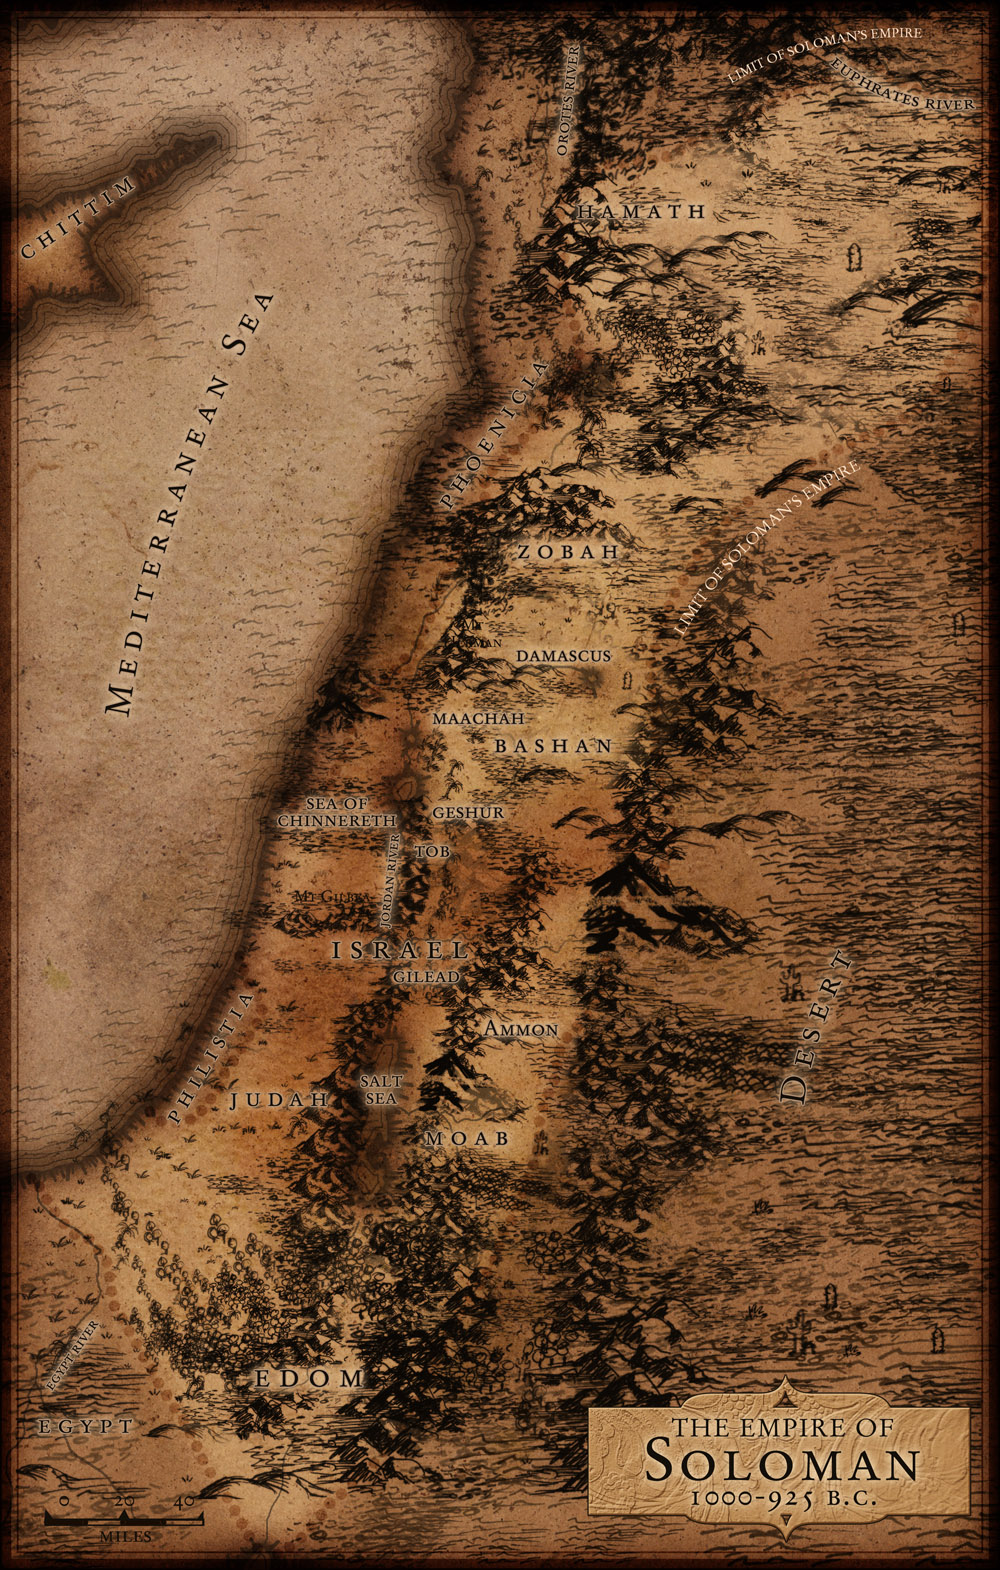 Solomon map of Israel in old fashioned parchment style.